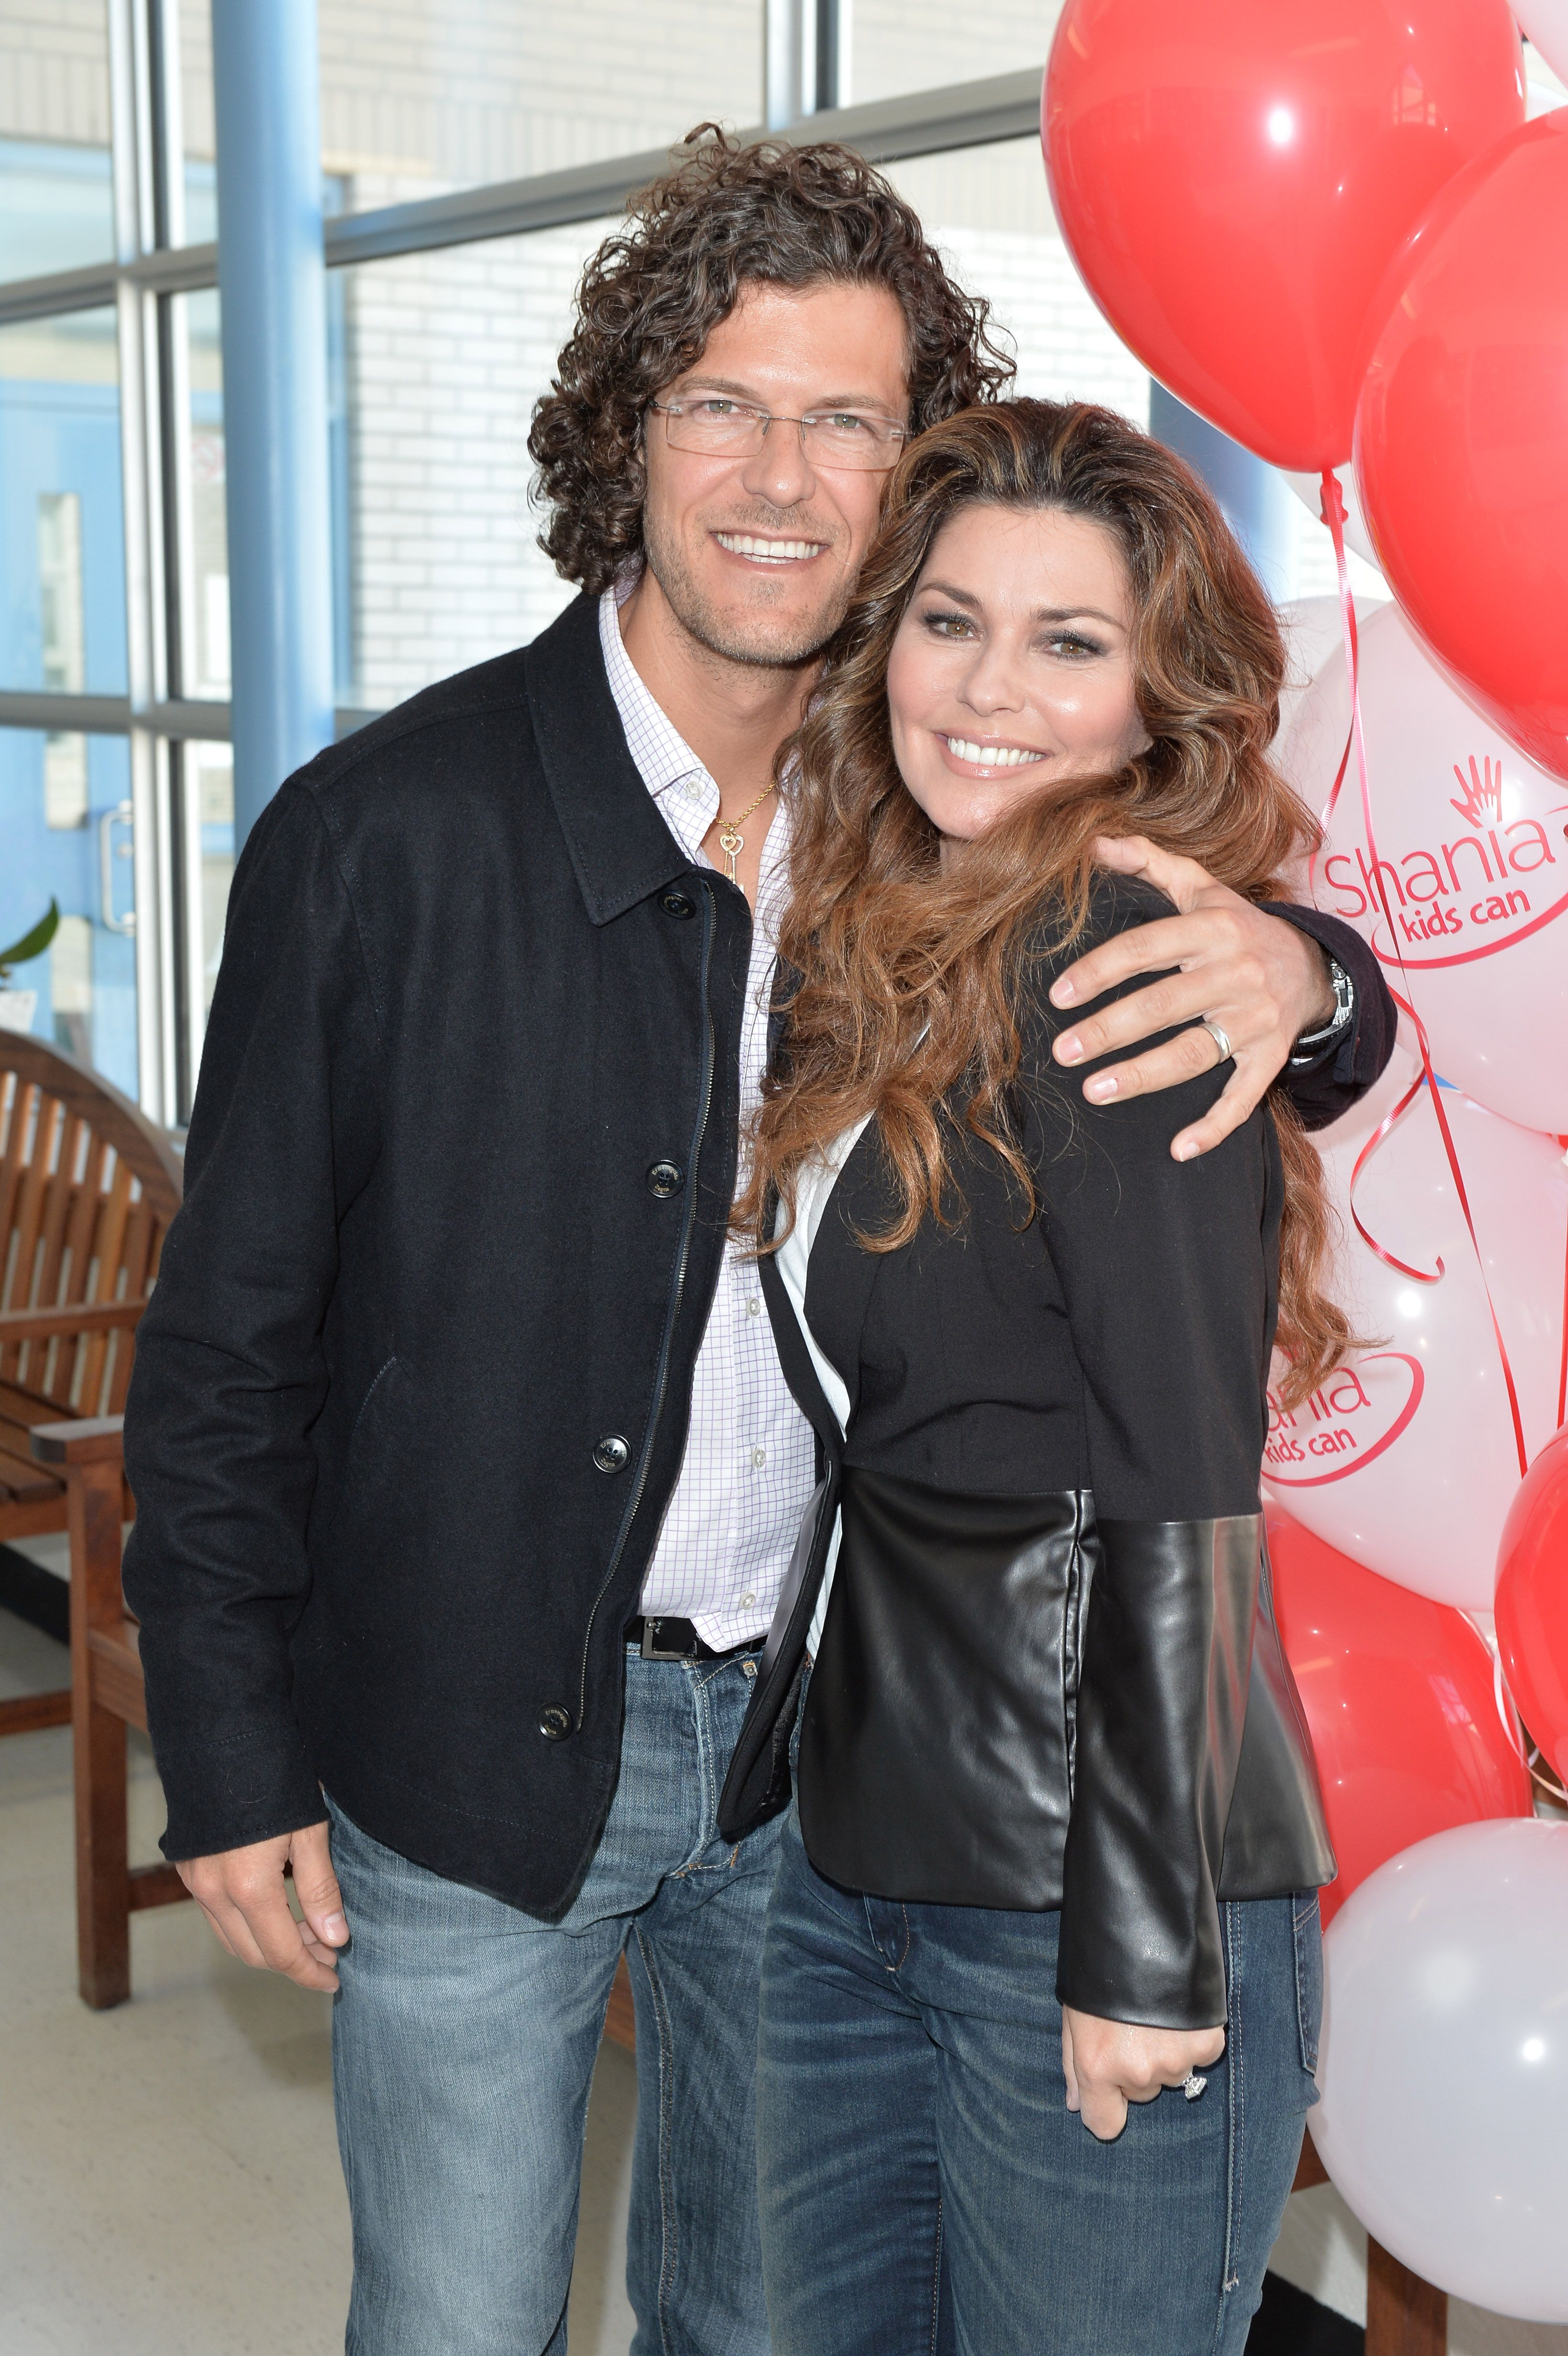 de755c92ab 12 Country Singer Couples - Most Inspiring Marriages In Country Music